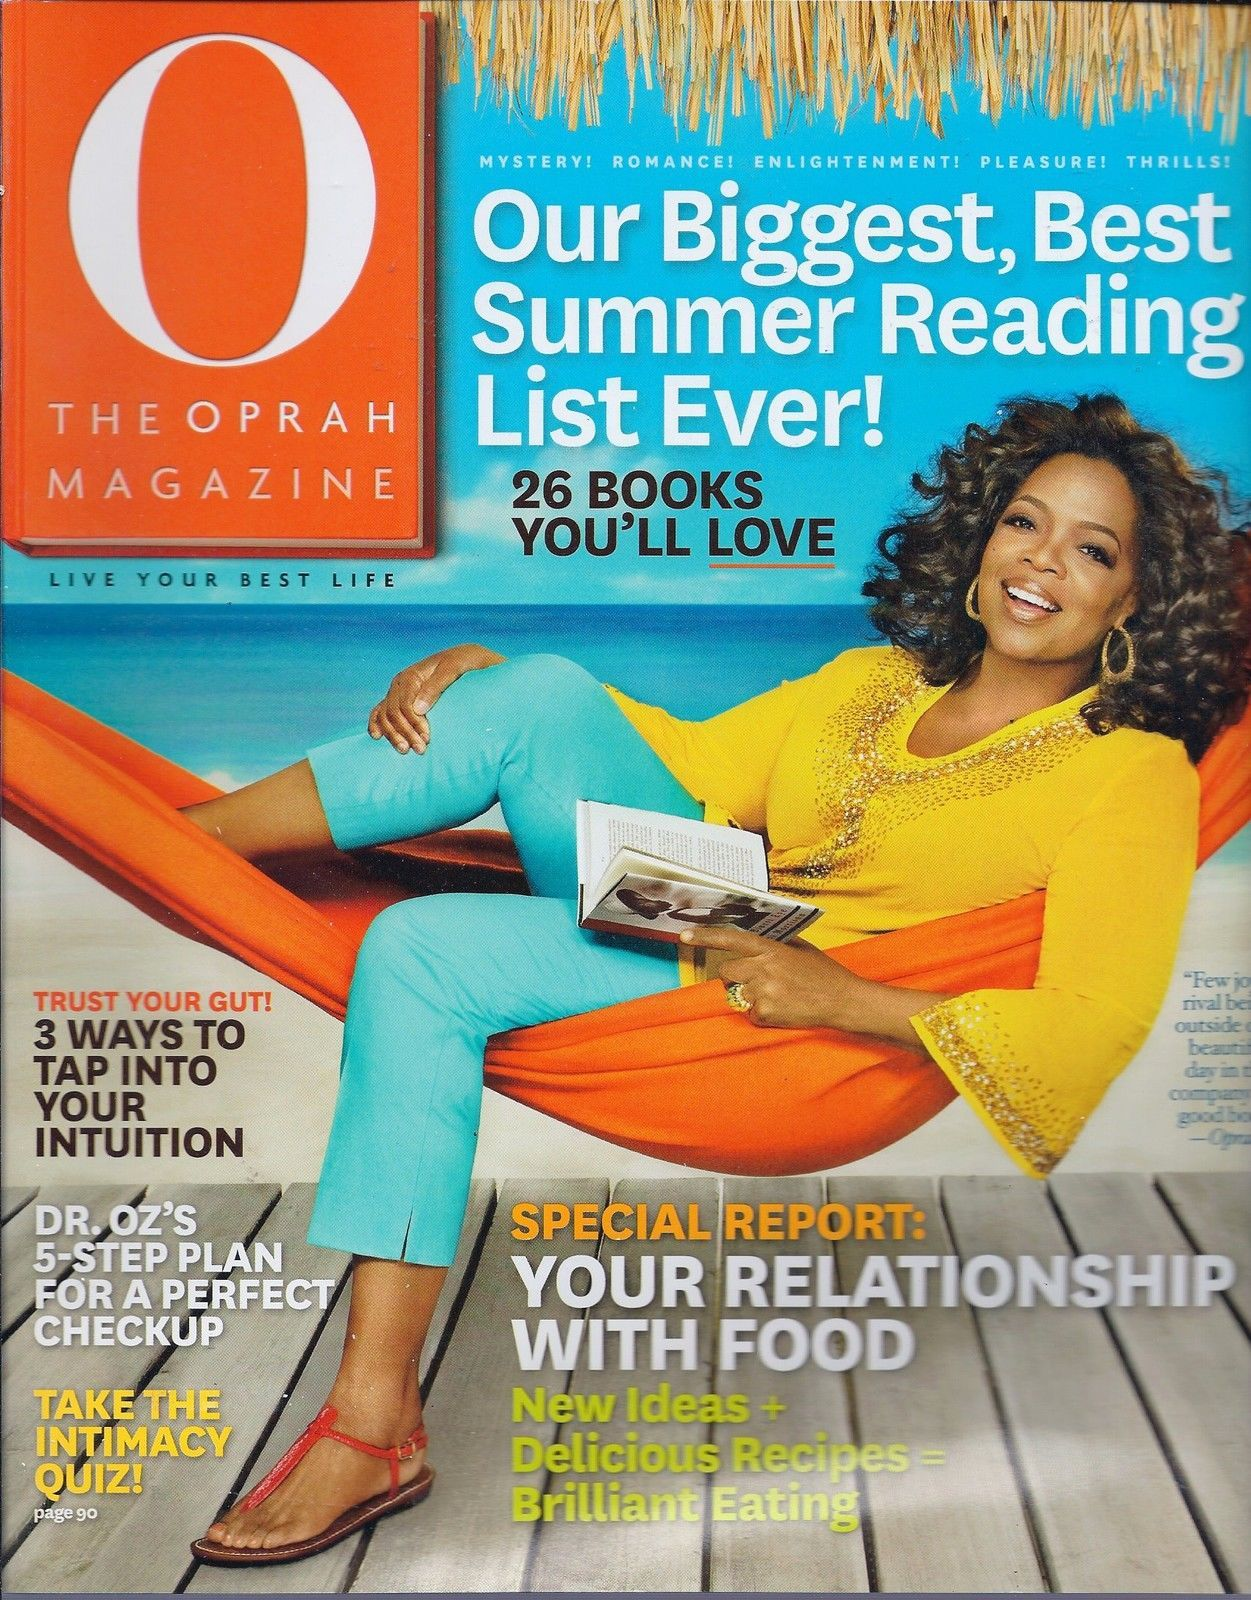 Primary image for The Oprah Magazine July 2010 -Tap into your Intuition